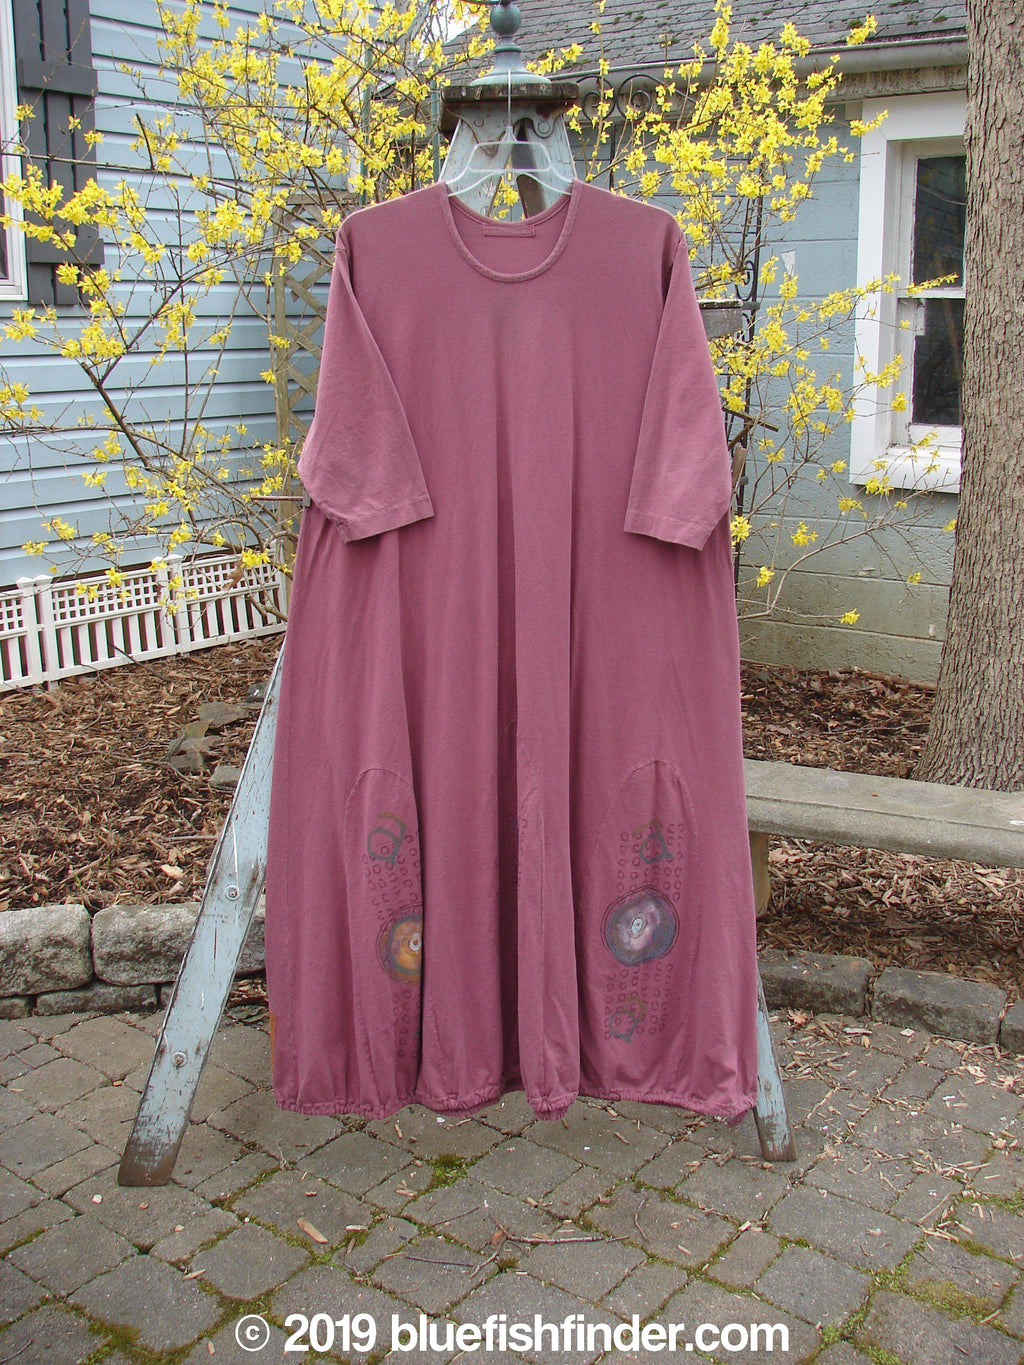 Vintage Blue Fish Clothing 1998 Mystic Dress Abstract Claret Size 2- Bluefishfinder.com